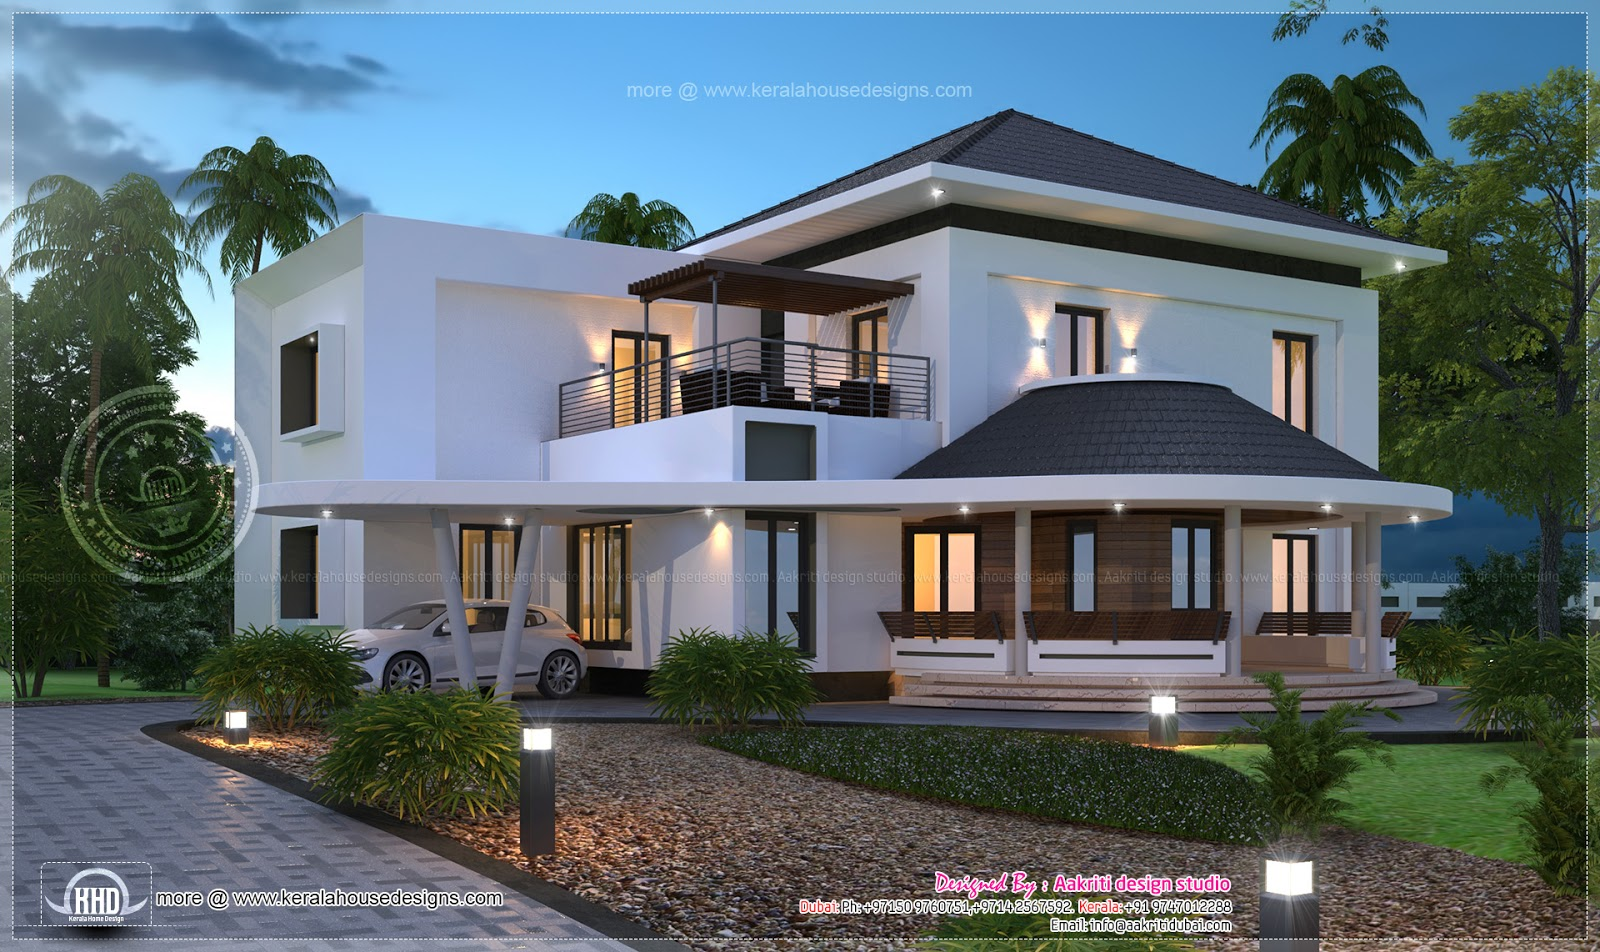 Sq ft details for Villa plans and designs